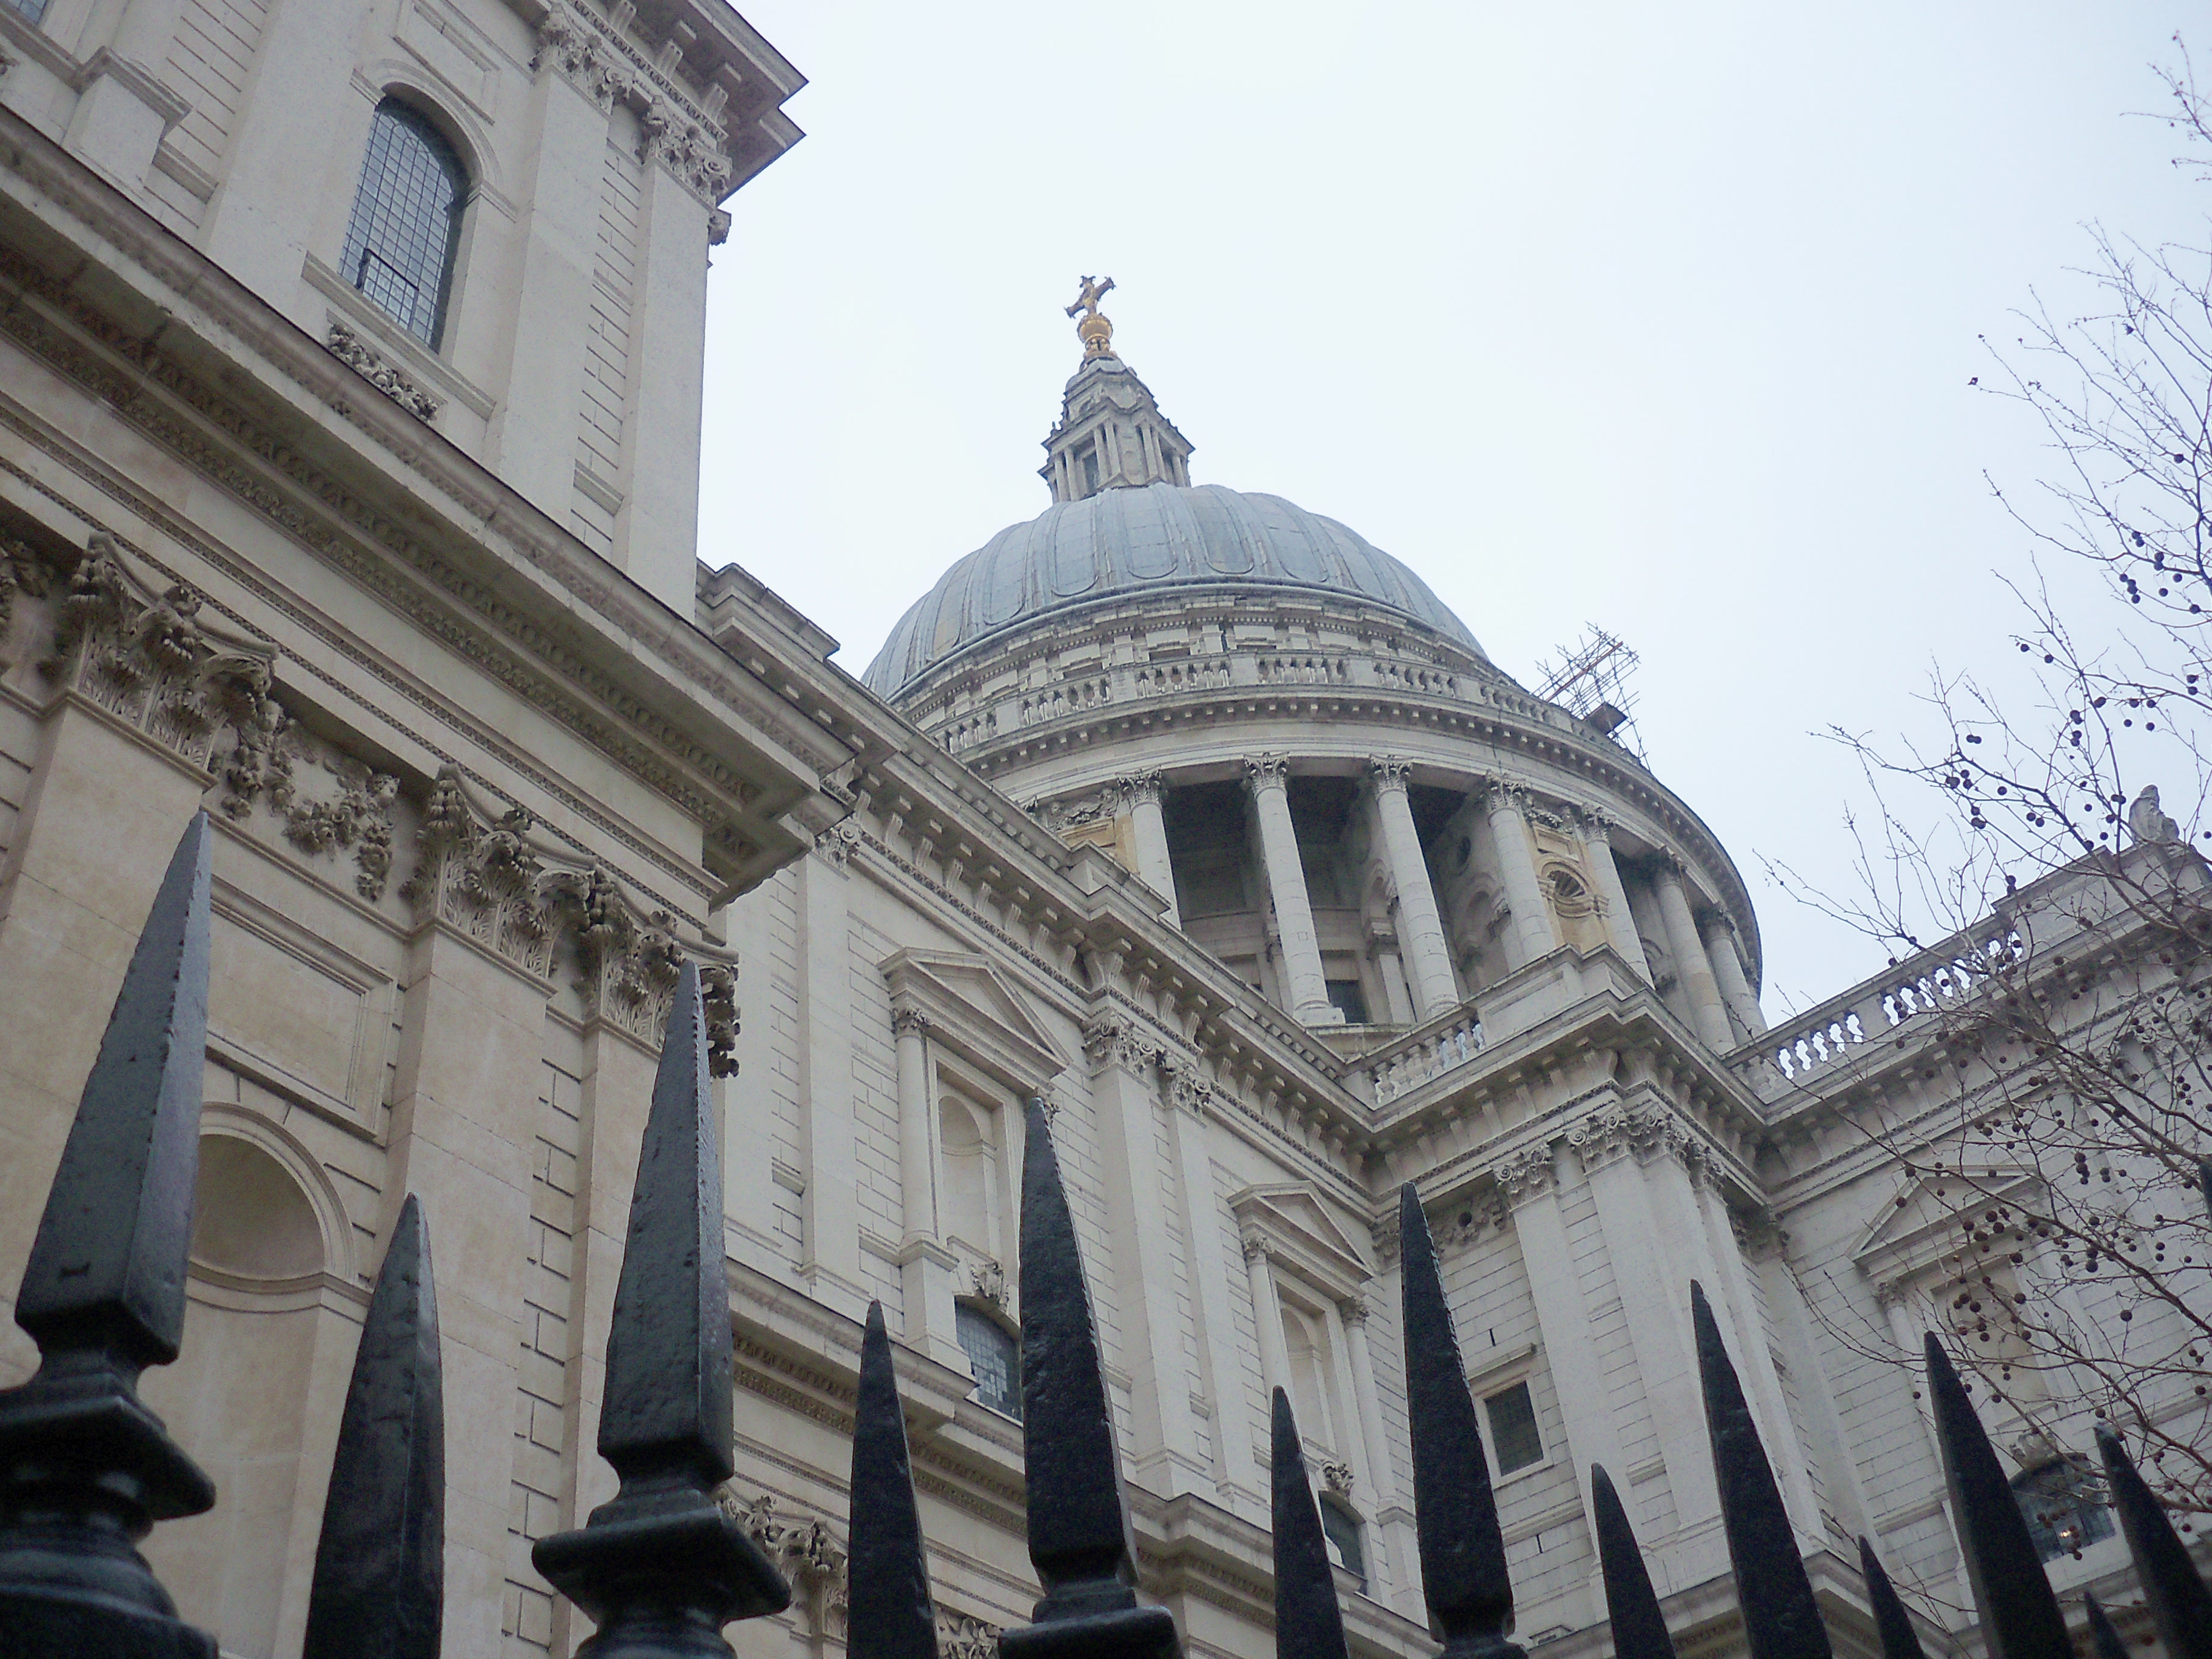 St pauls cathedral (1).JPG